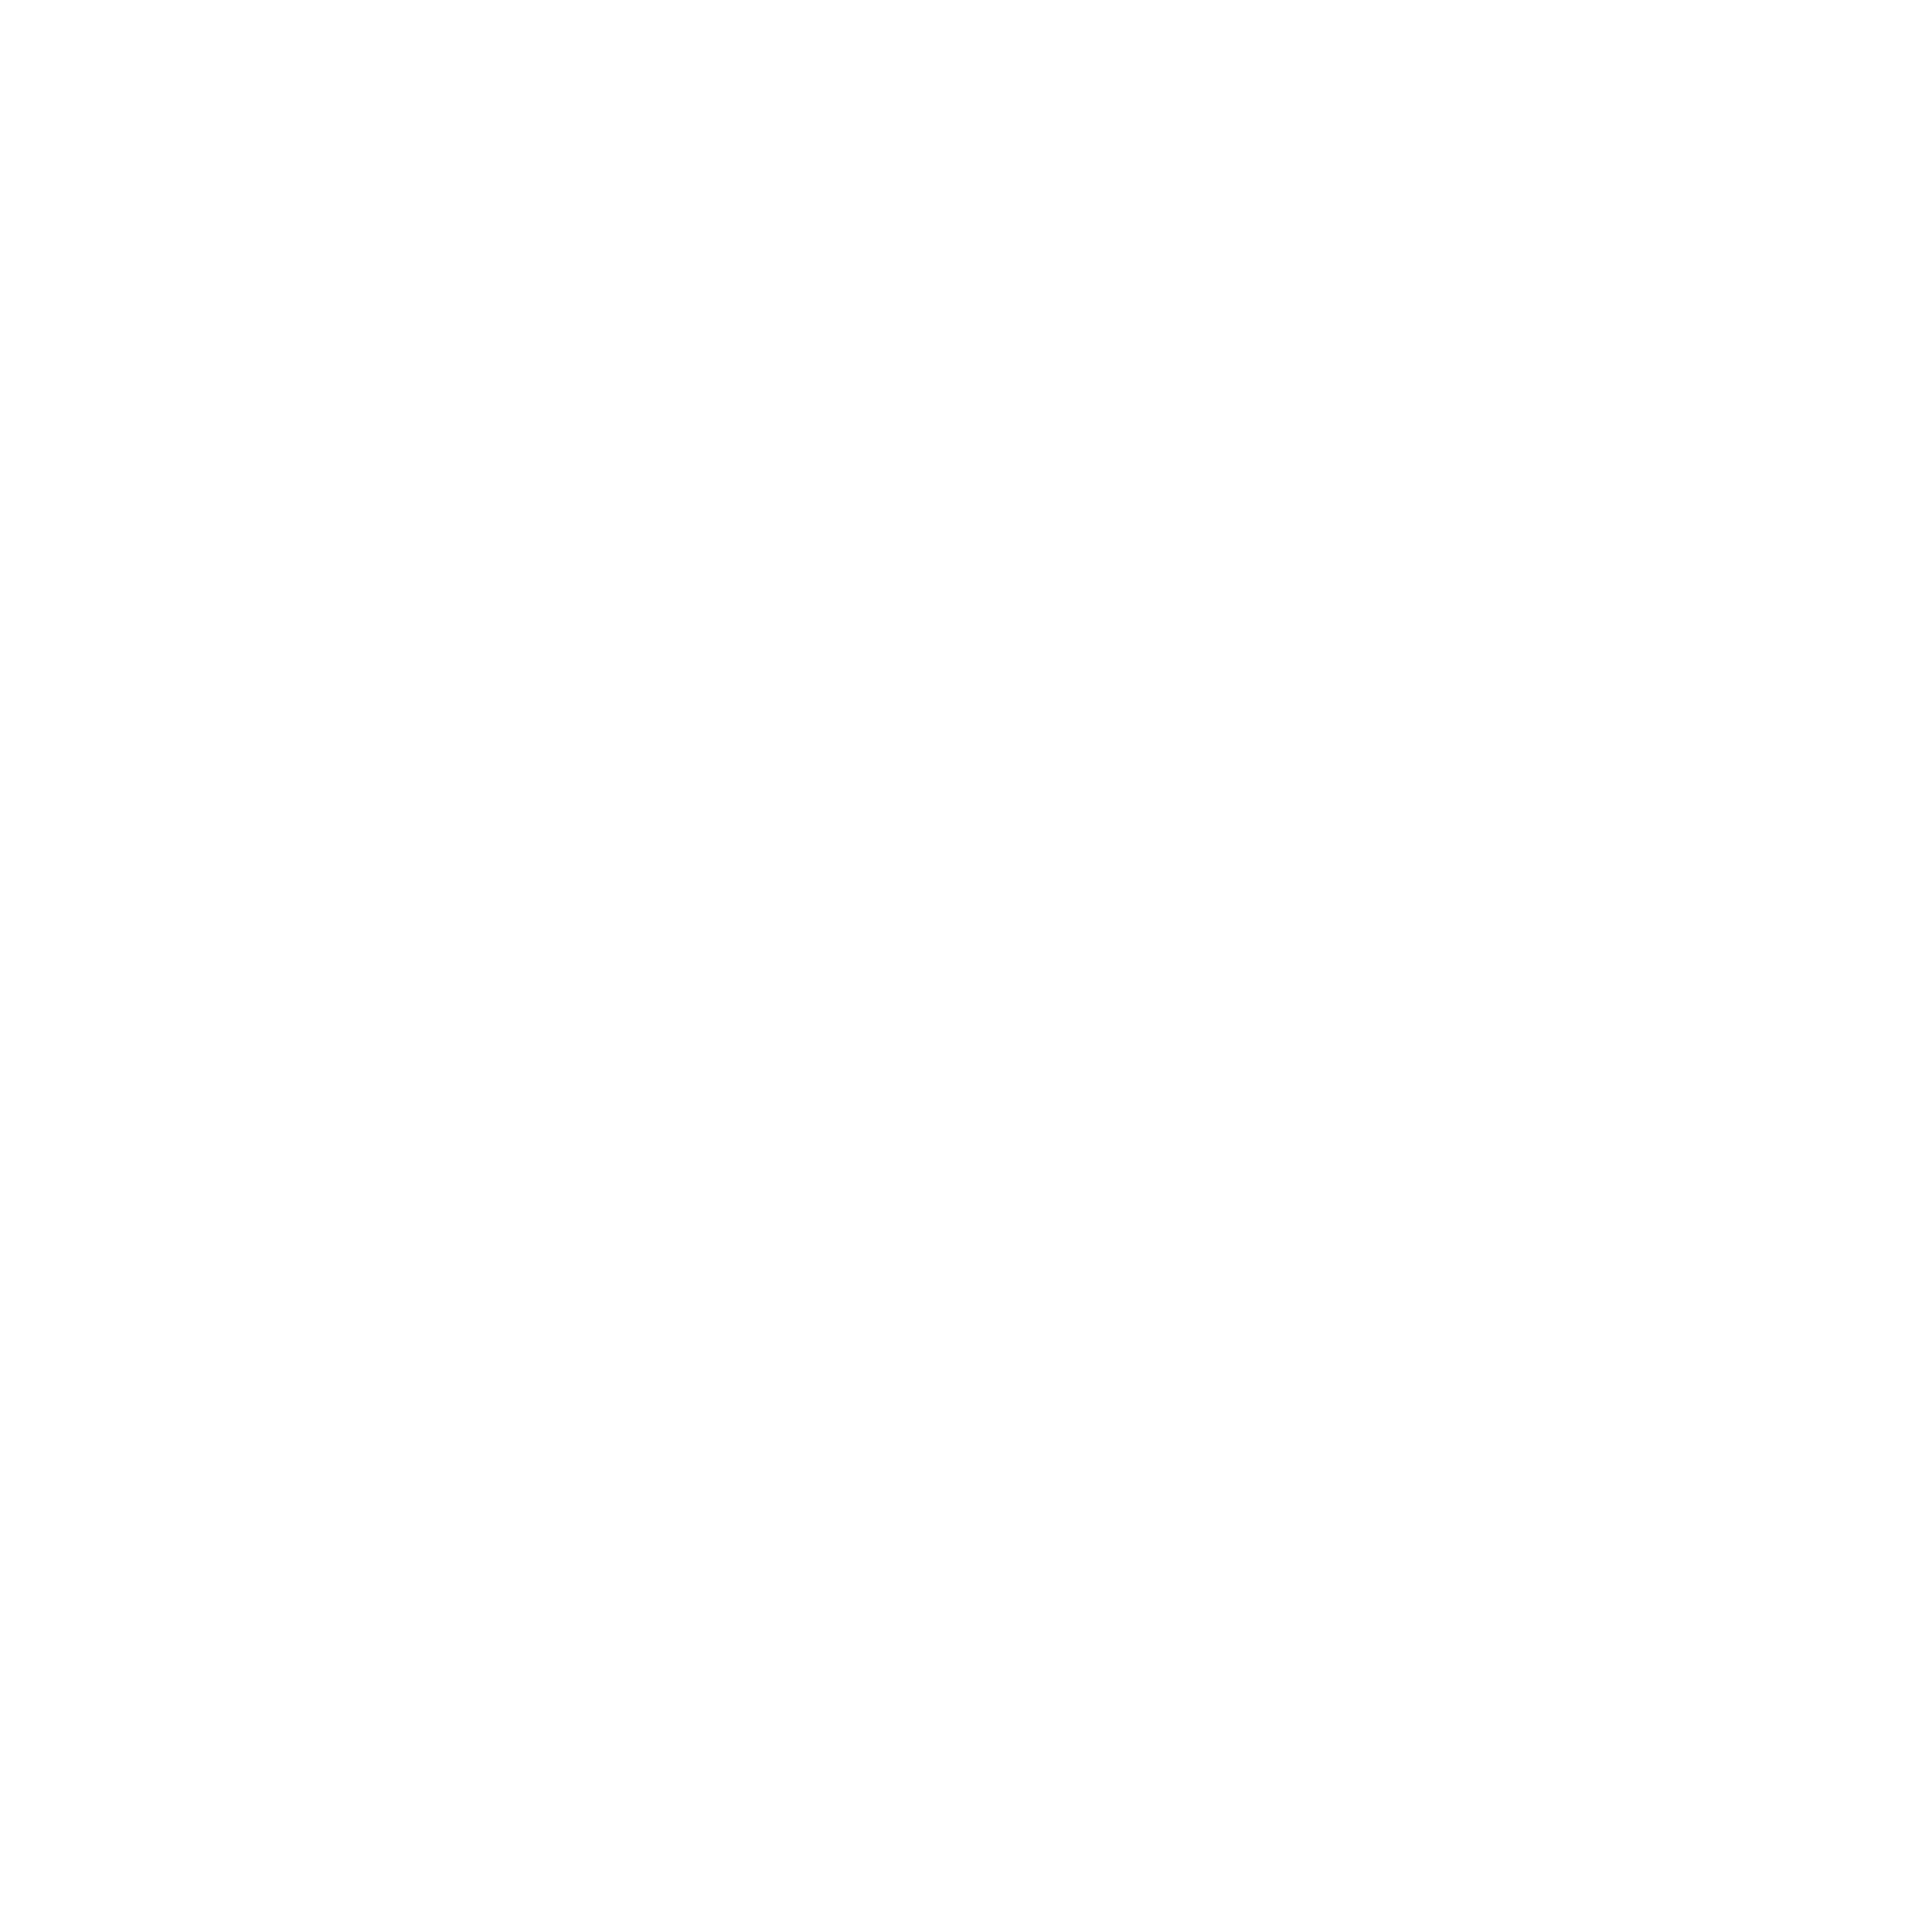 File:White Smile Lirion.png - Wikimedia Commons